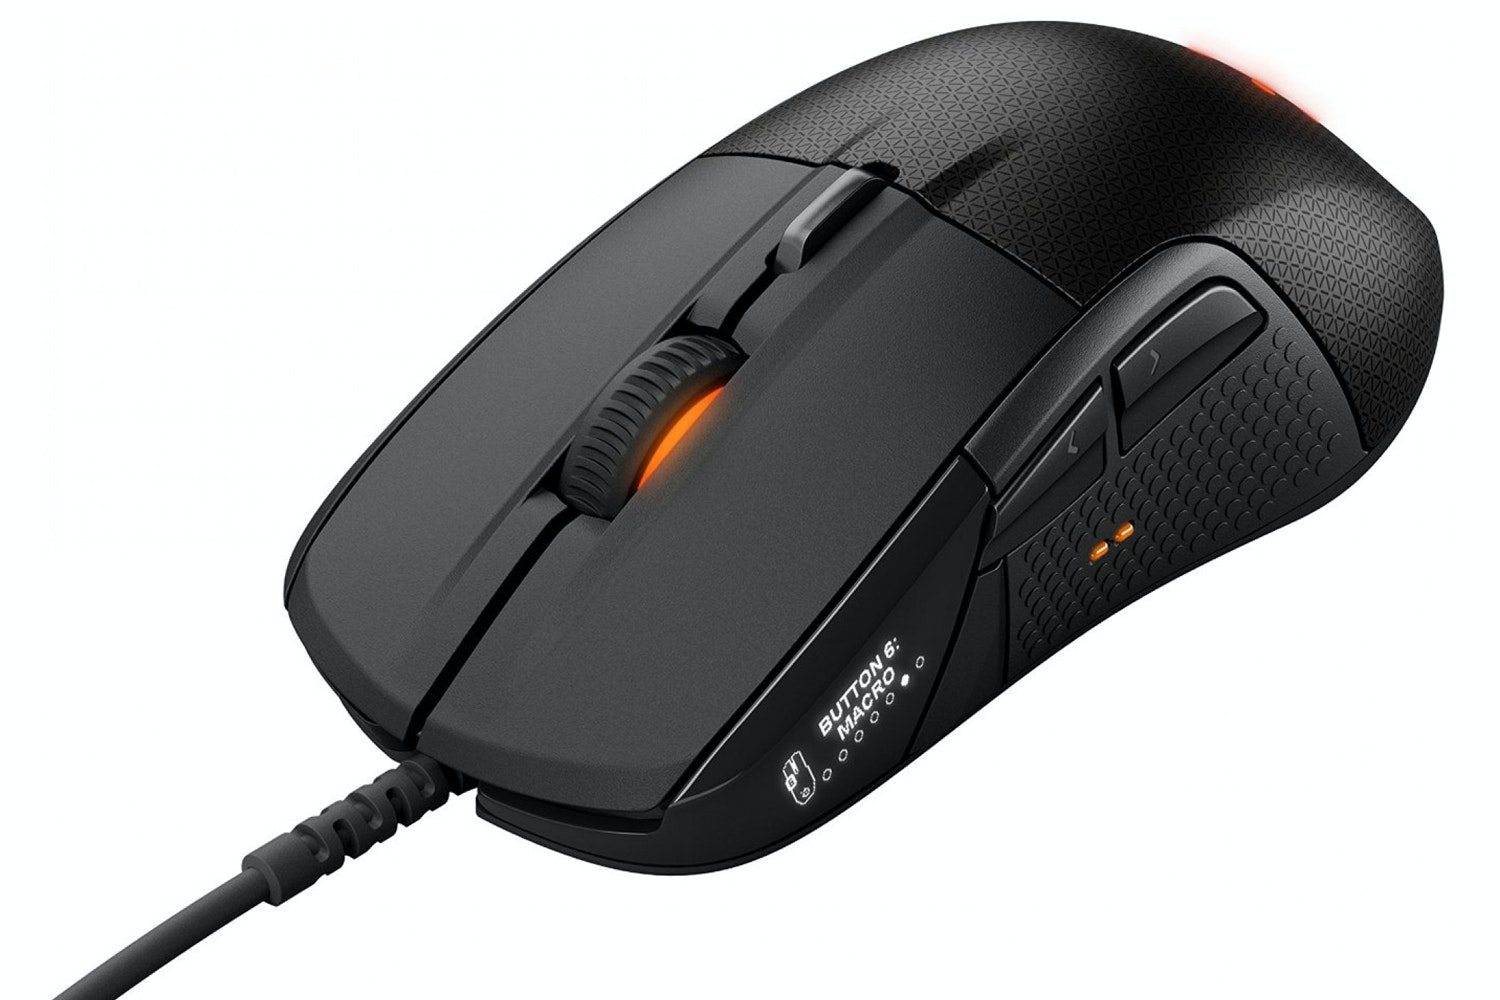 SteelSeries Rival 700 Optical Gaming Mouse